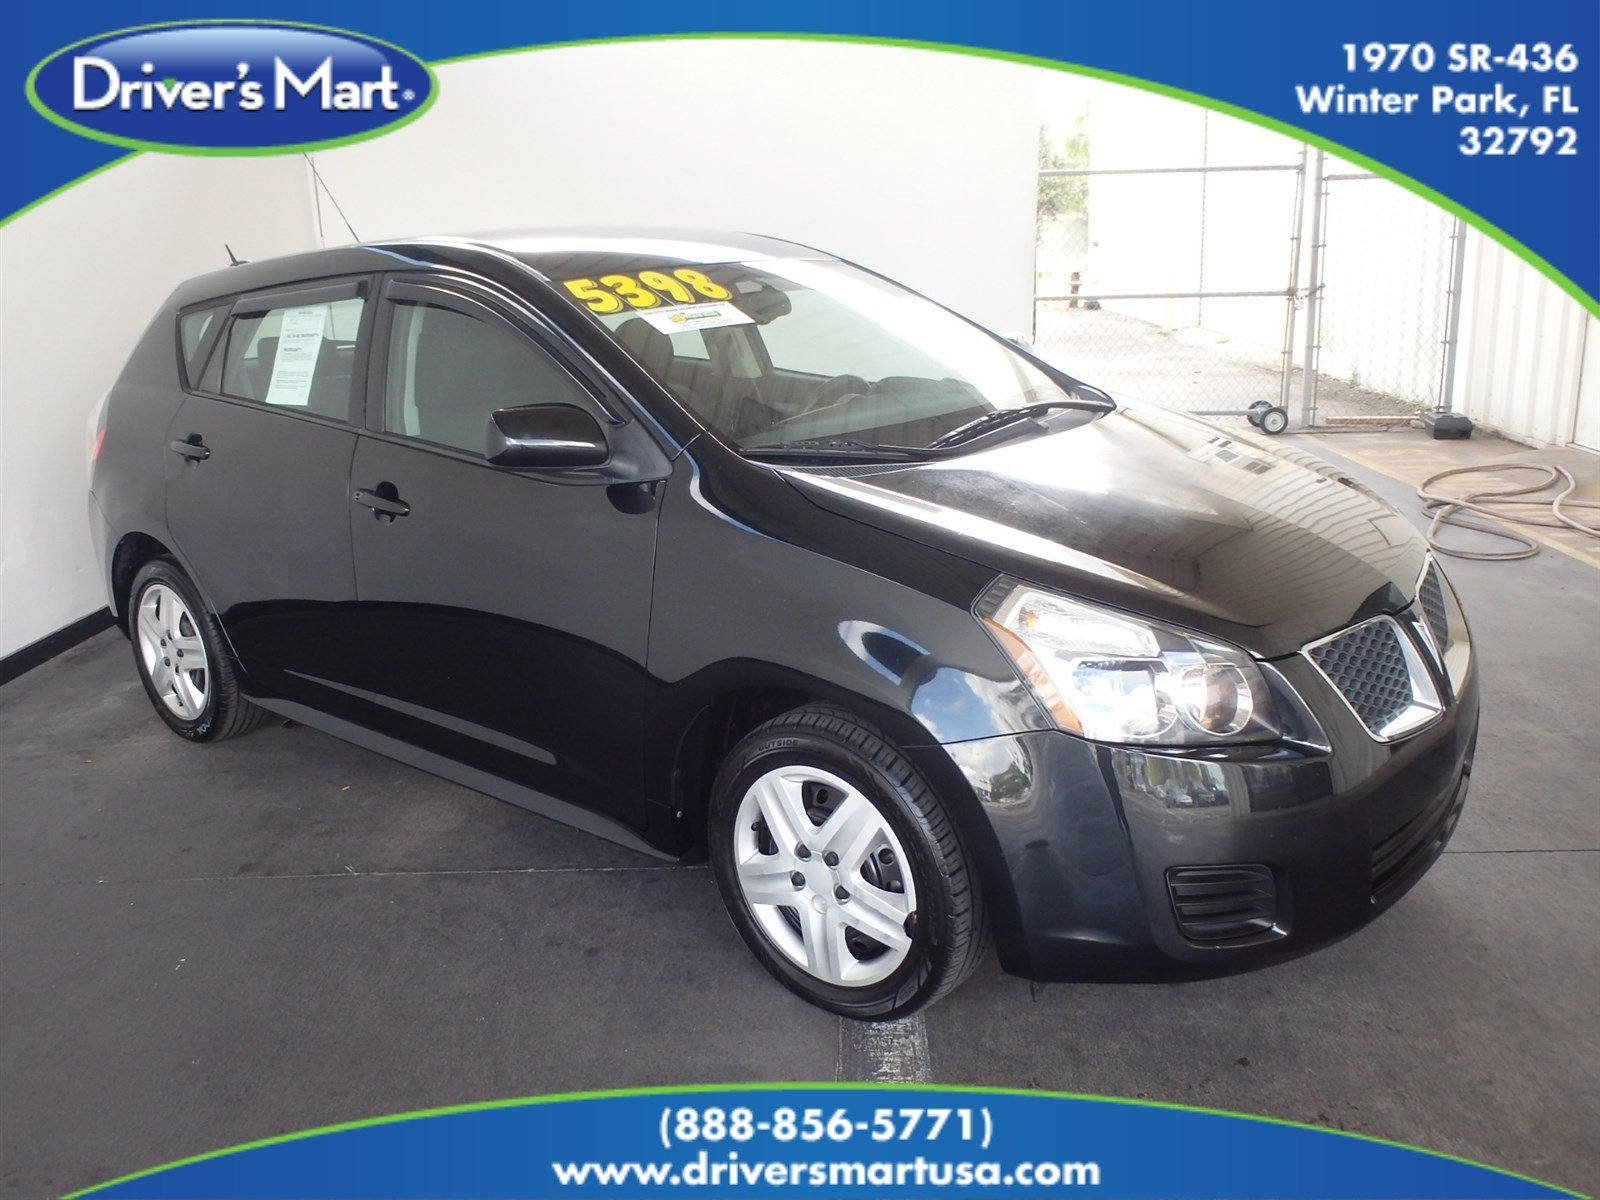 Used 2010 Pontiac Vibe Base w/1.8L Hatchback Winter Park